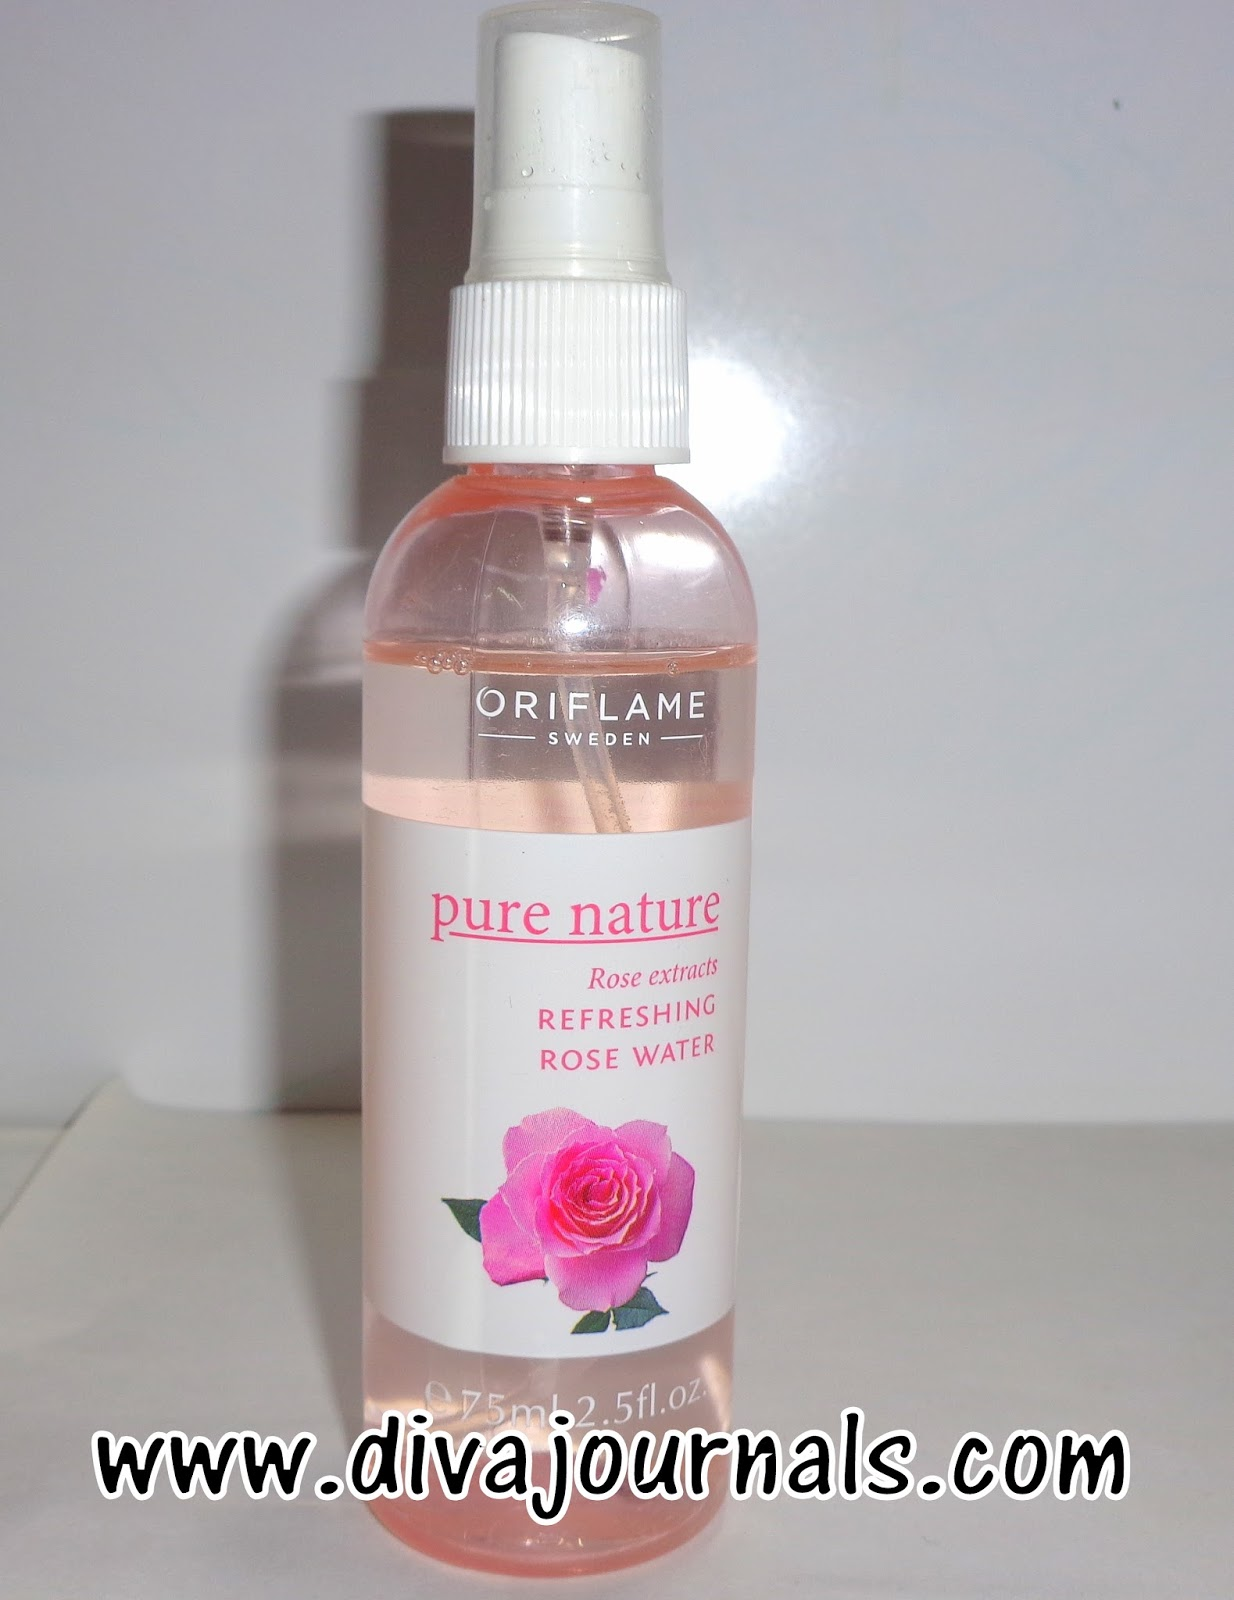 Oriflame Pure Nature Rose Extracts Refreshing Rose Water Review